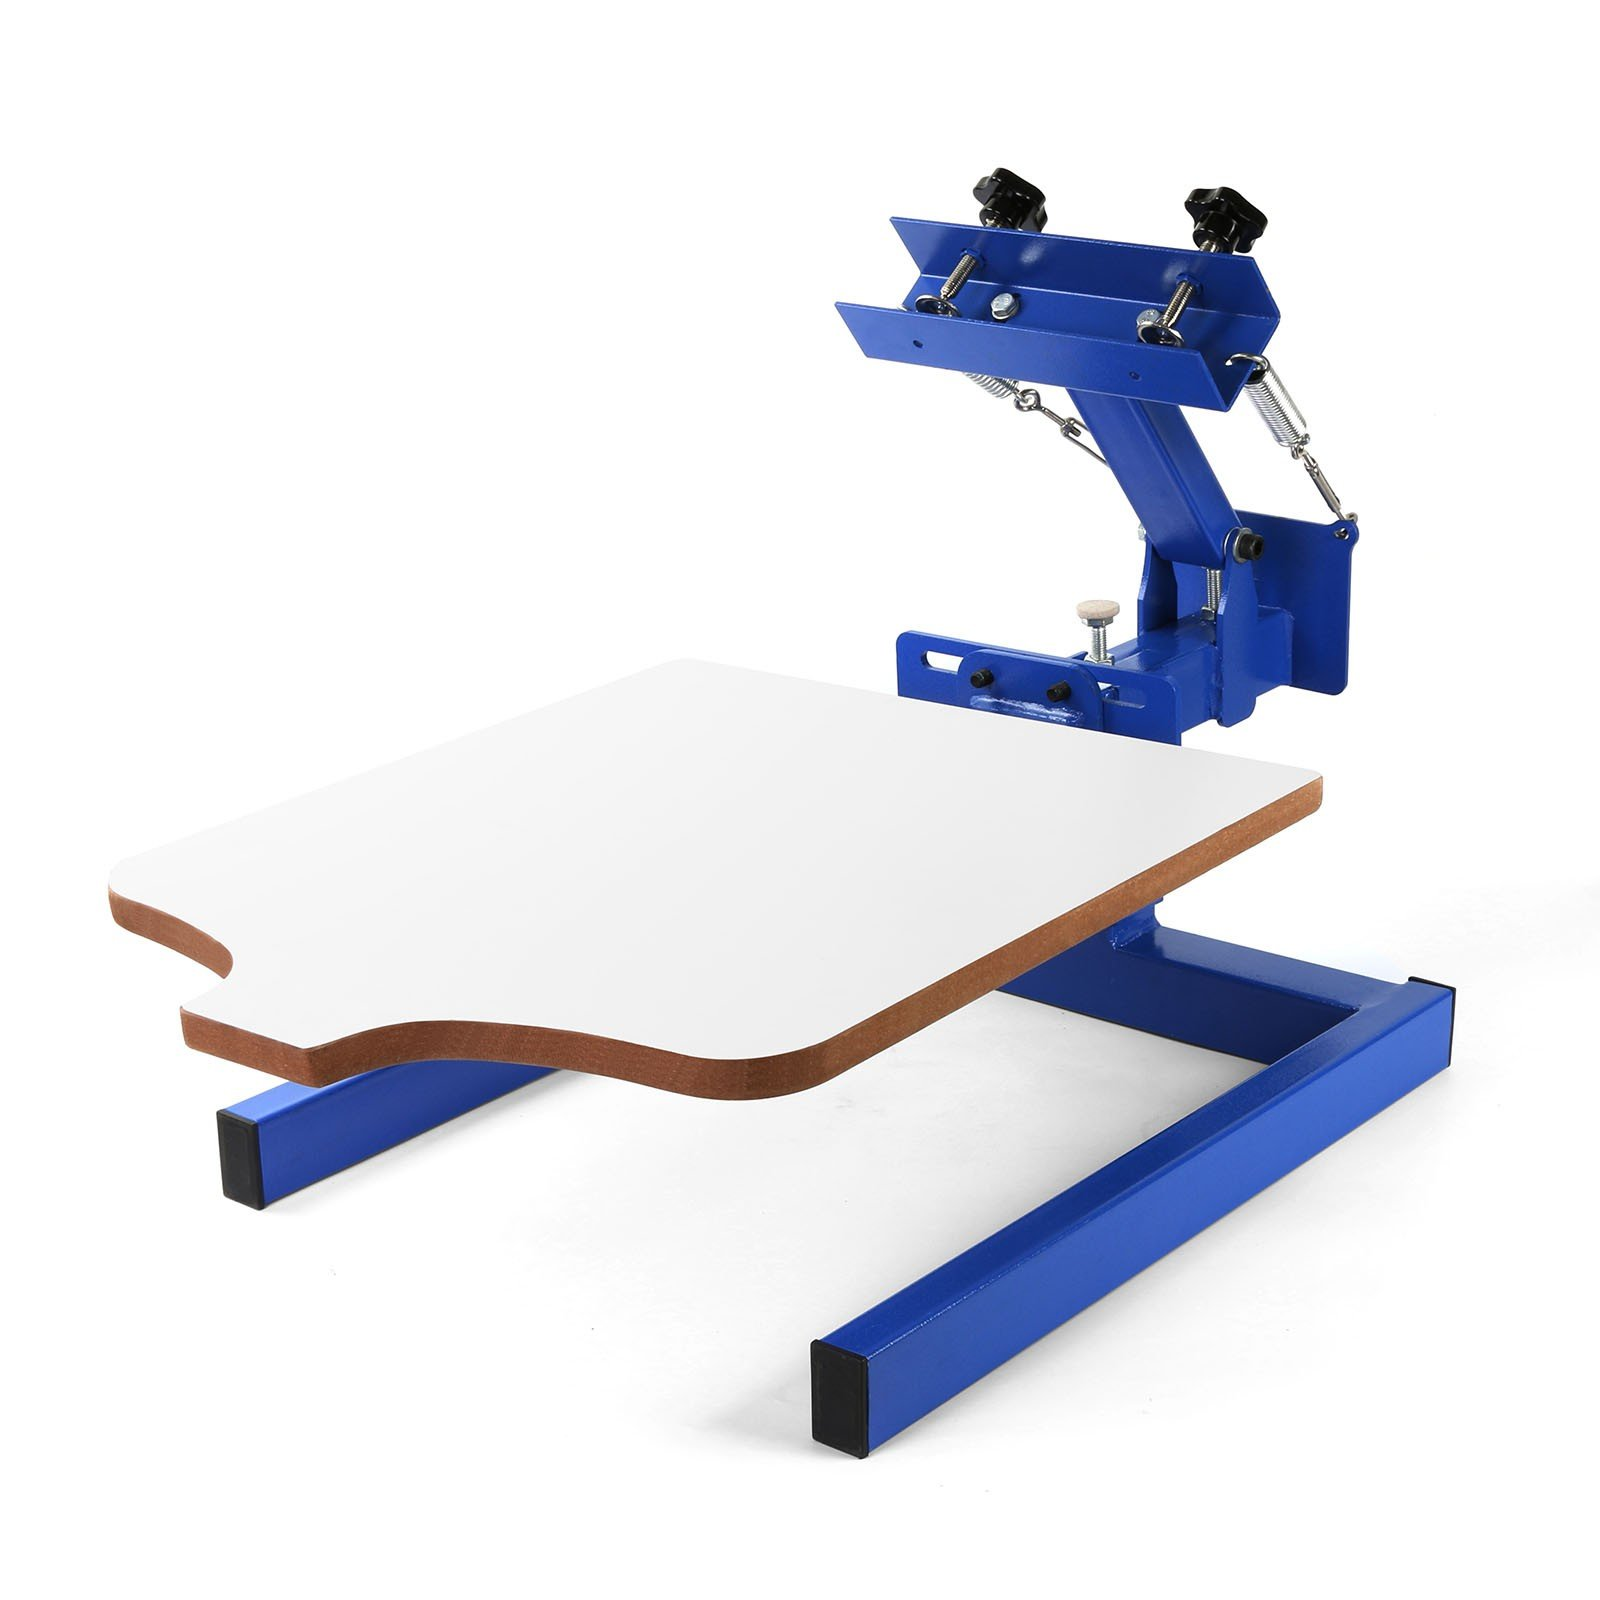 VEVOR Screen Printing Machine 17.7x21.7Inch Screen Printing Press 1 Color 1 Station Silk Screen Printing for T-Shirt DIY Printing Removable Pallet (1 Color 1 Station) by VEVOR